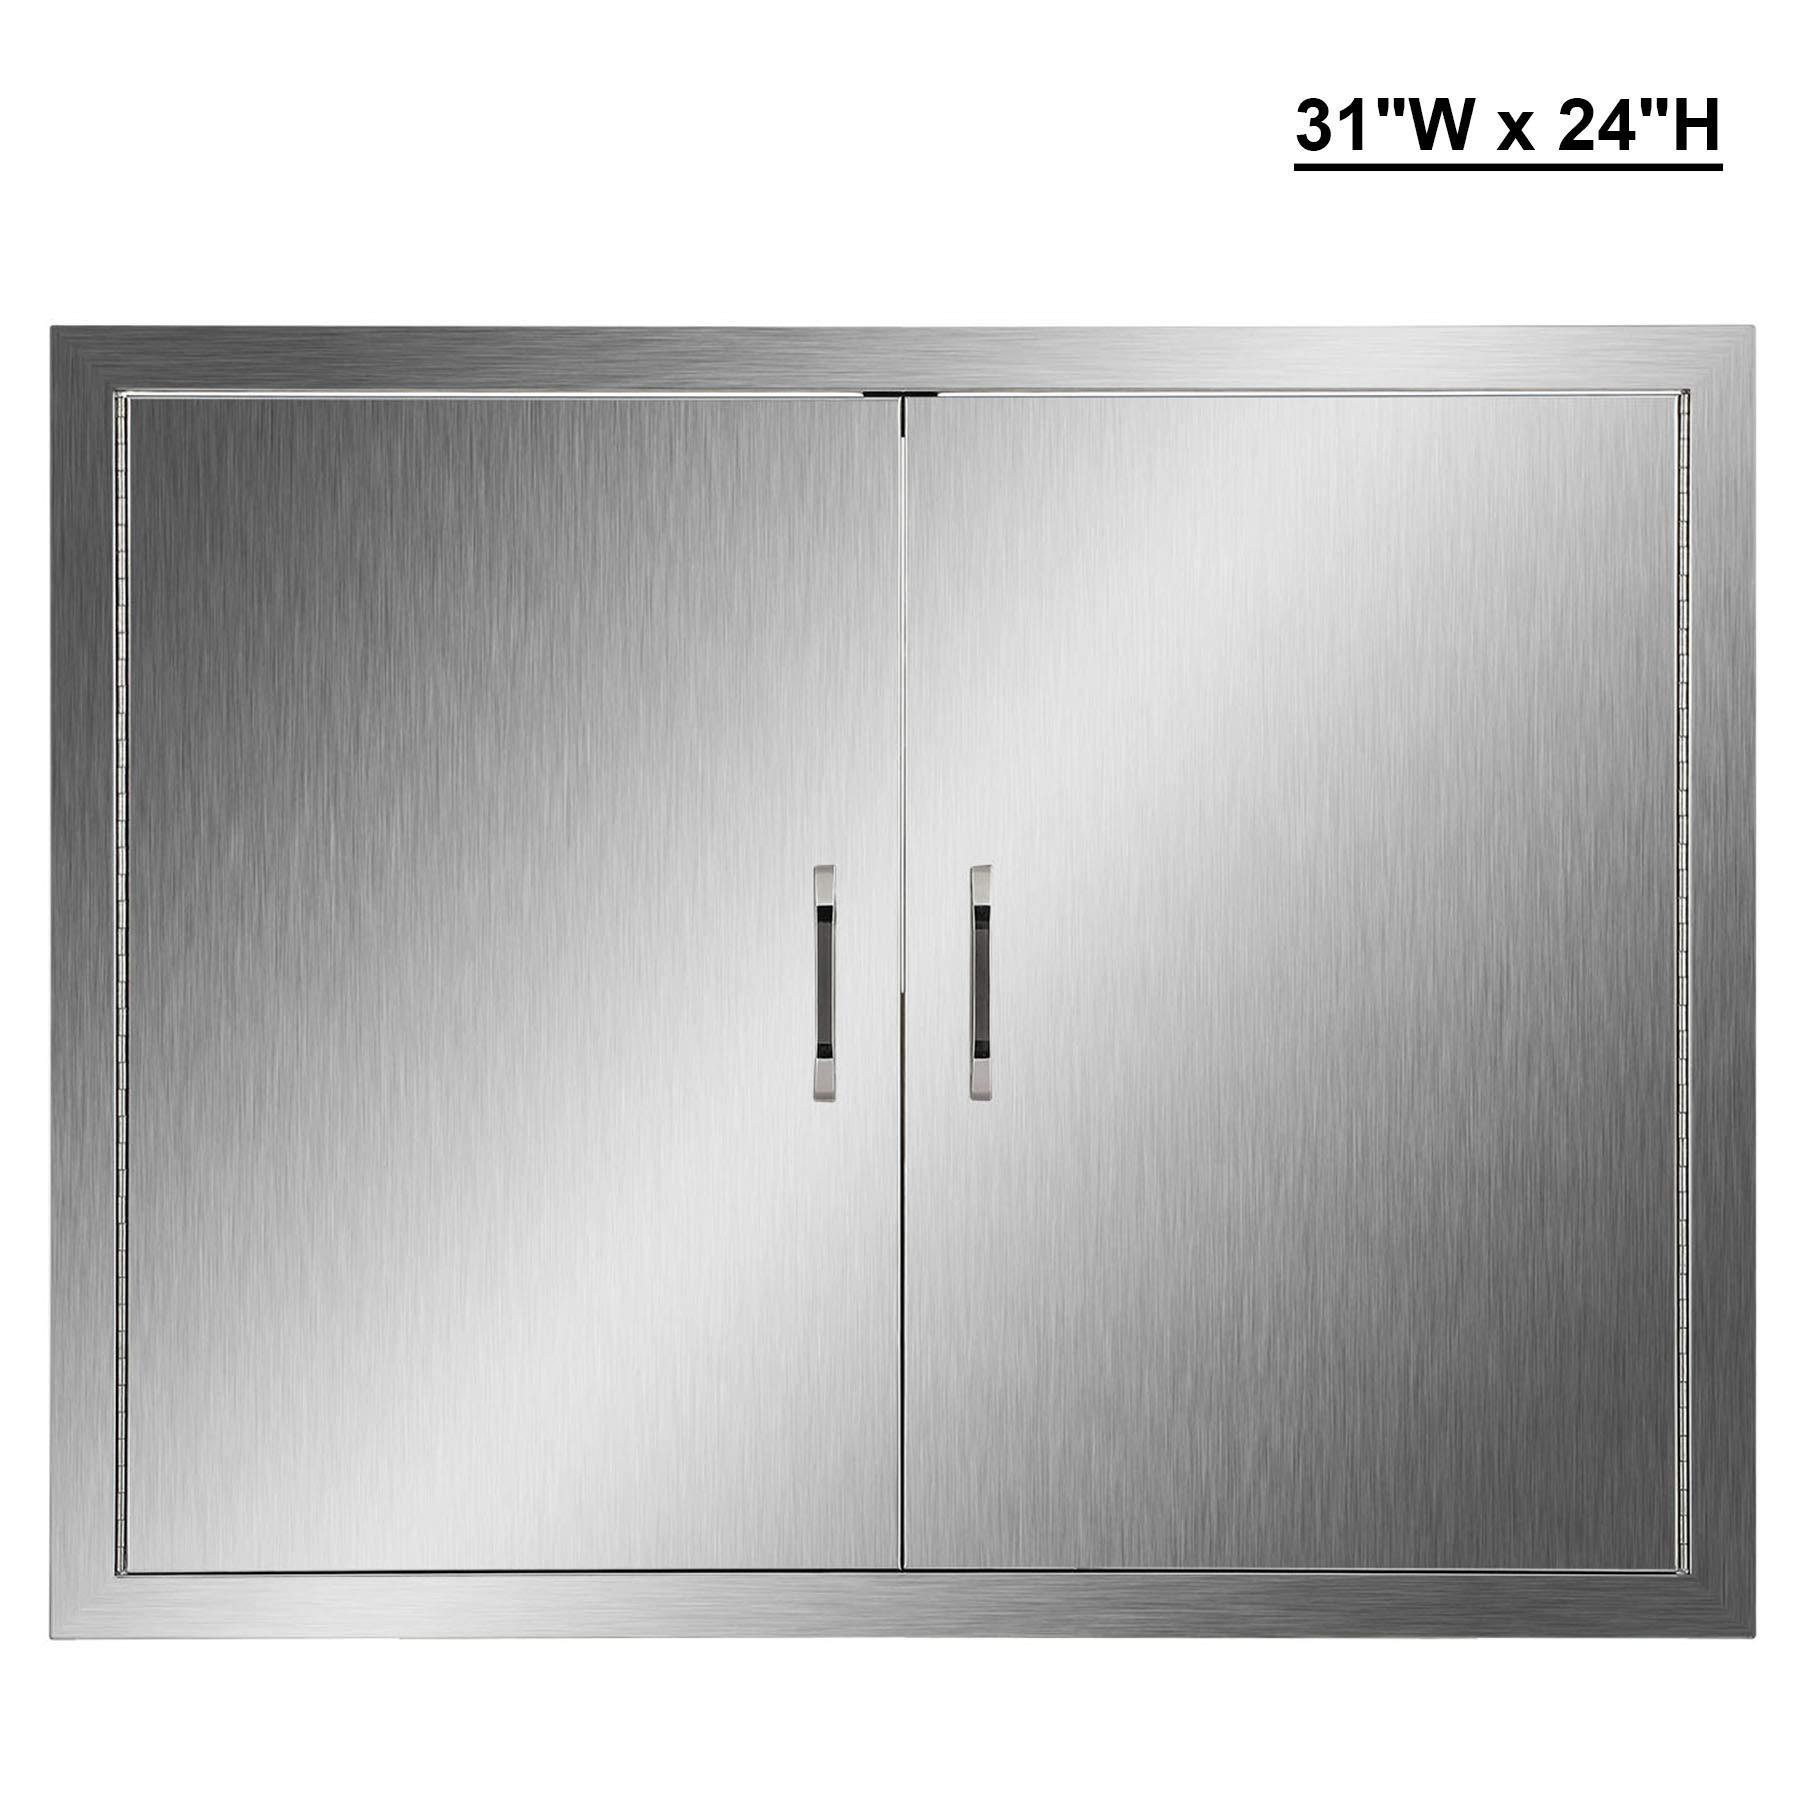 CO-Z Outdoor Kitchen Doors, 304 Brushed Stainless Steel Double BBQ Access Doors for Outdoor Kitchen, Commercial BBQ Island, Grilling Station, Outside Cabinet, Barbeque Grill, Built-in (31'' W x 24'' H) by CO-Z (Image #1)